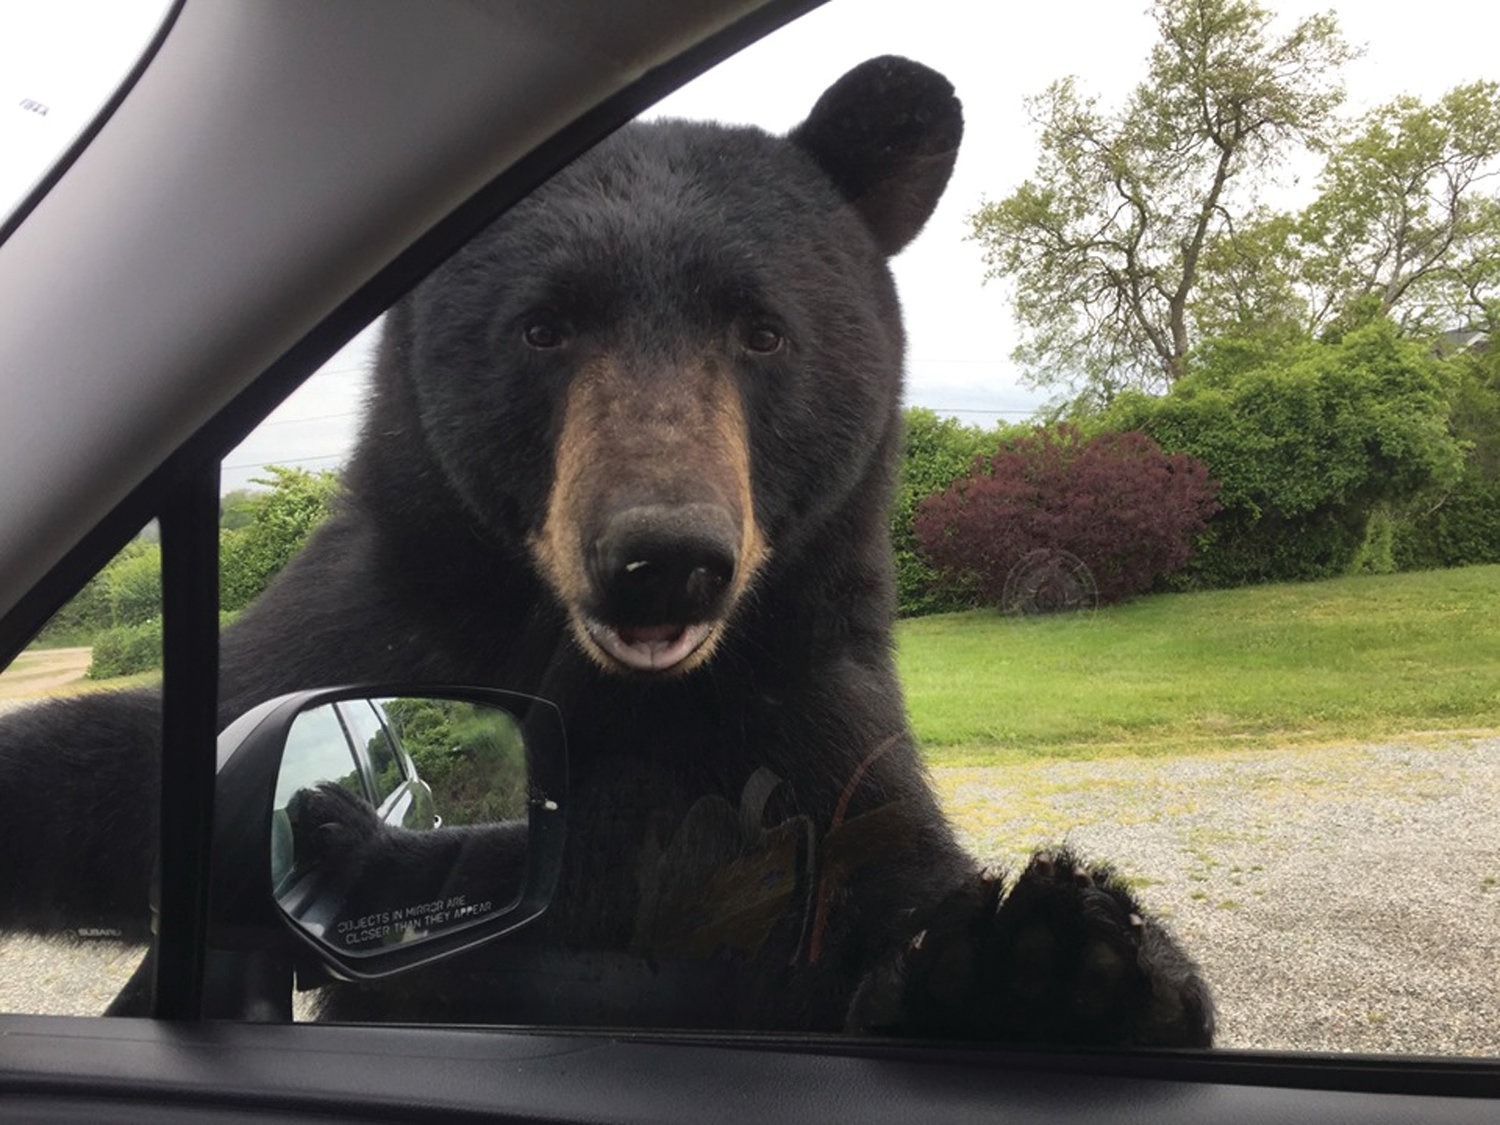 TOO CLOSE FOR COMFORT: A black bear peers inside a vehicle near Camp Varnum in Narragansett on May 28.